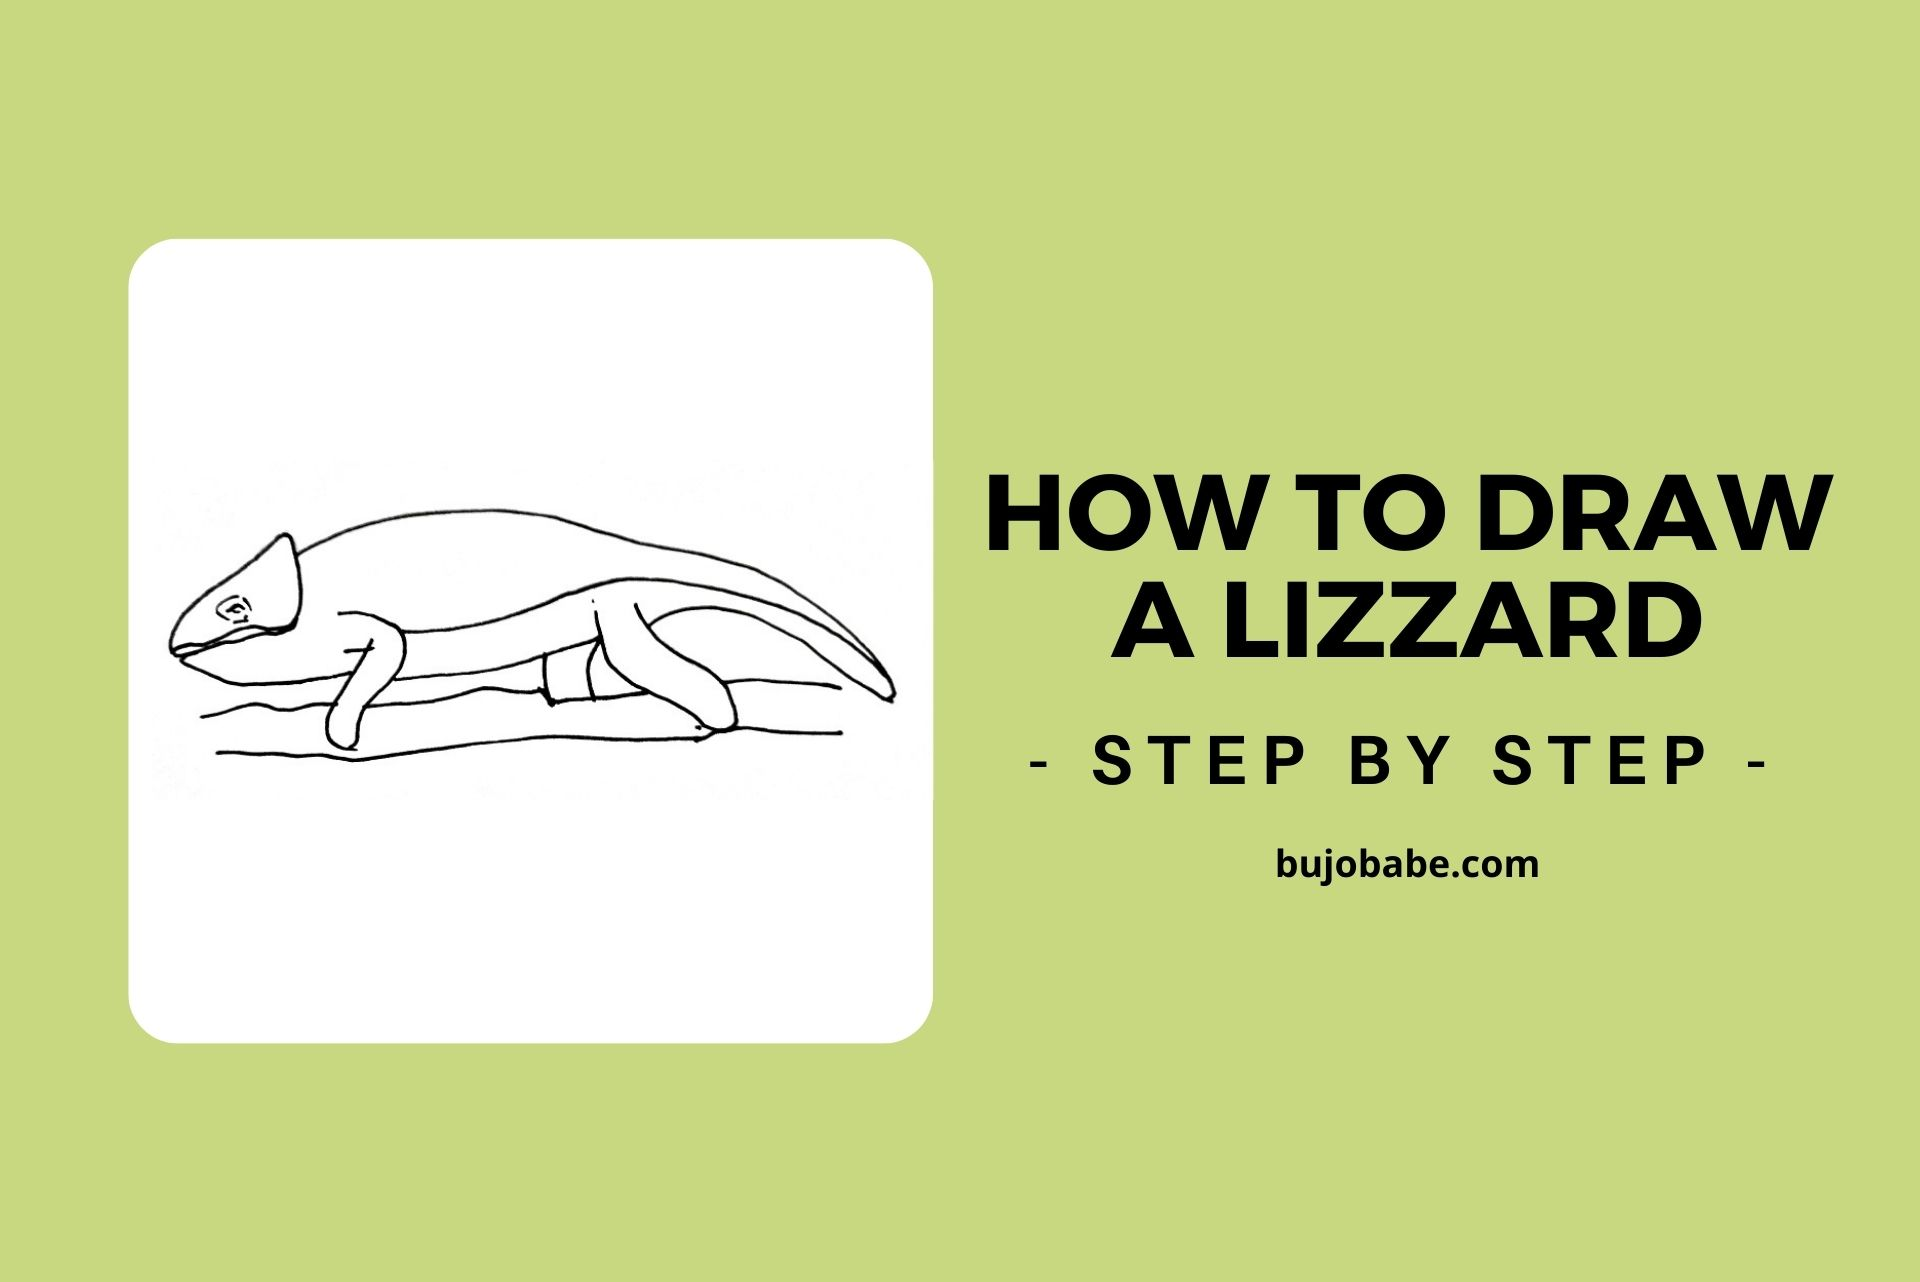 how to draw a lizard step by step